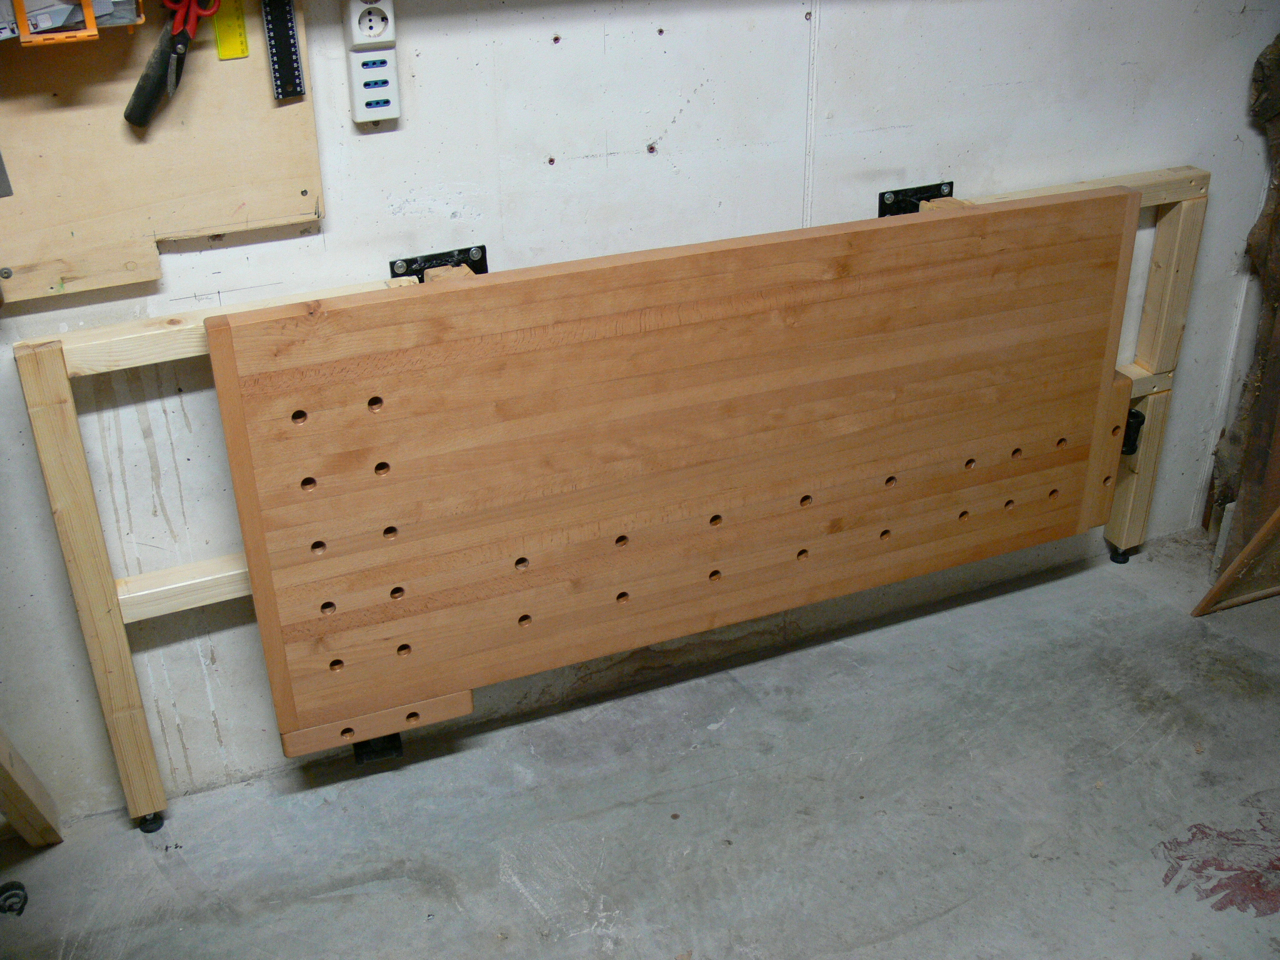 Wall Mounted Folding Workbench | Collapsable Workbench | Space Saver Workbench